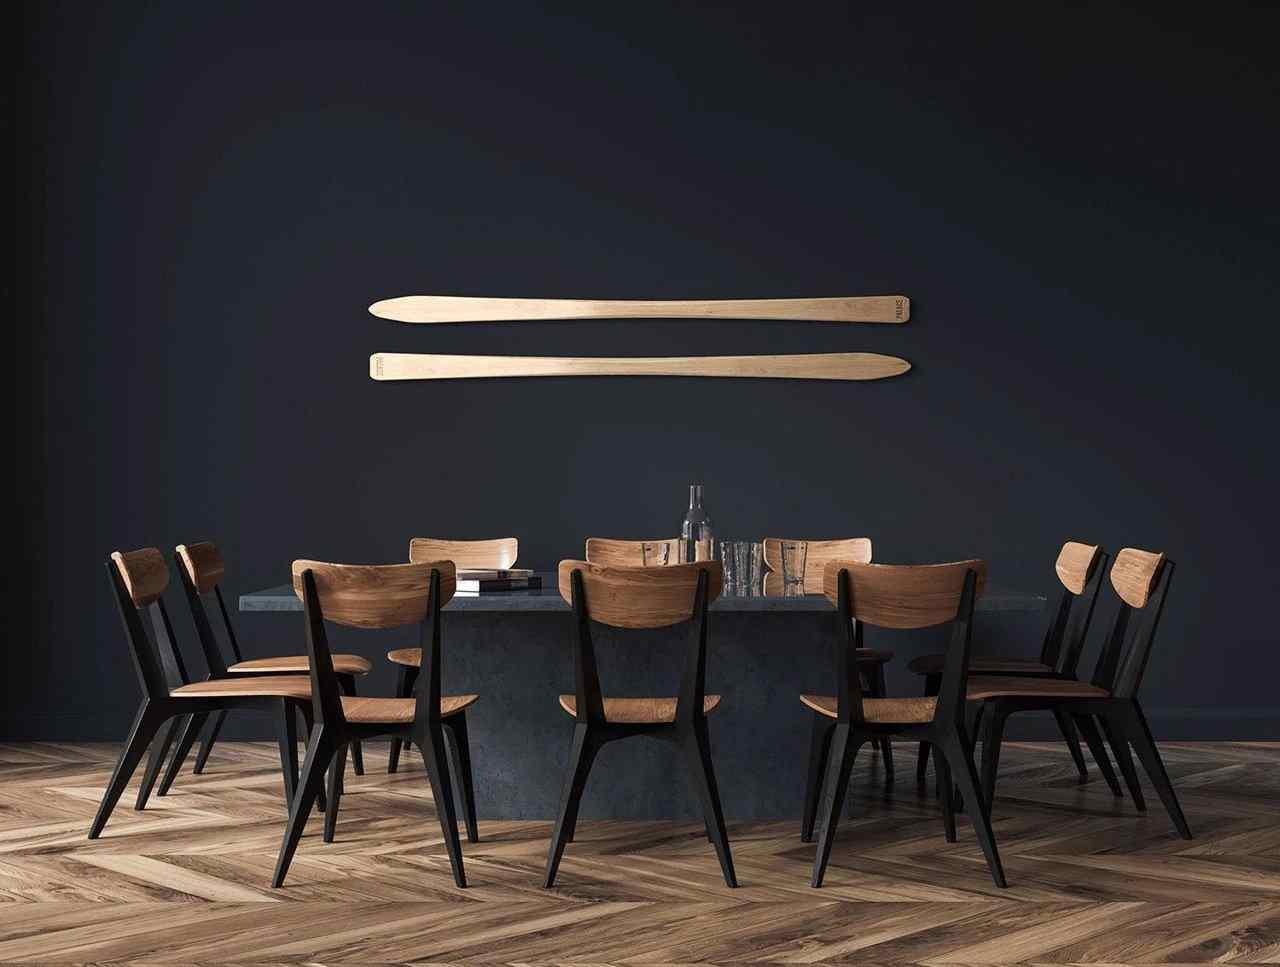 A beautiful dining room table with chairs around it on wood floor. Above the table are two Maple Shot Skis hung horizontally on the wall